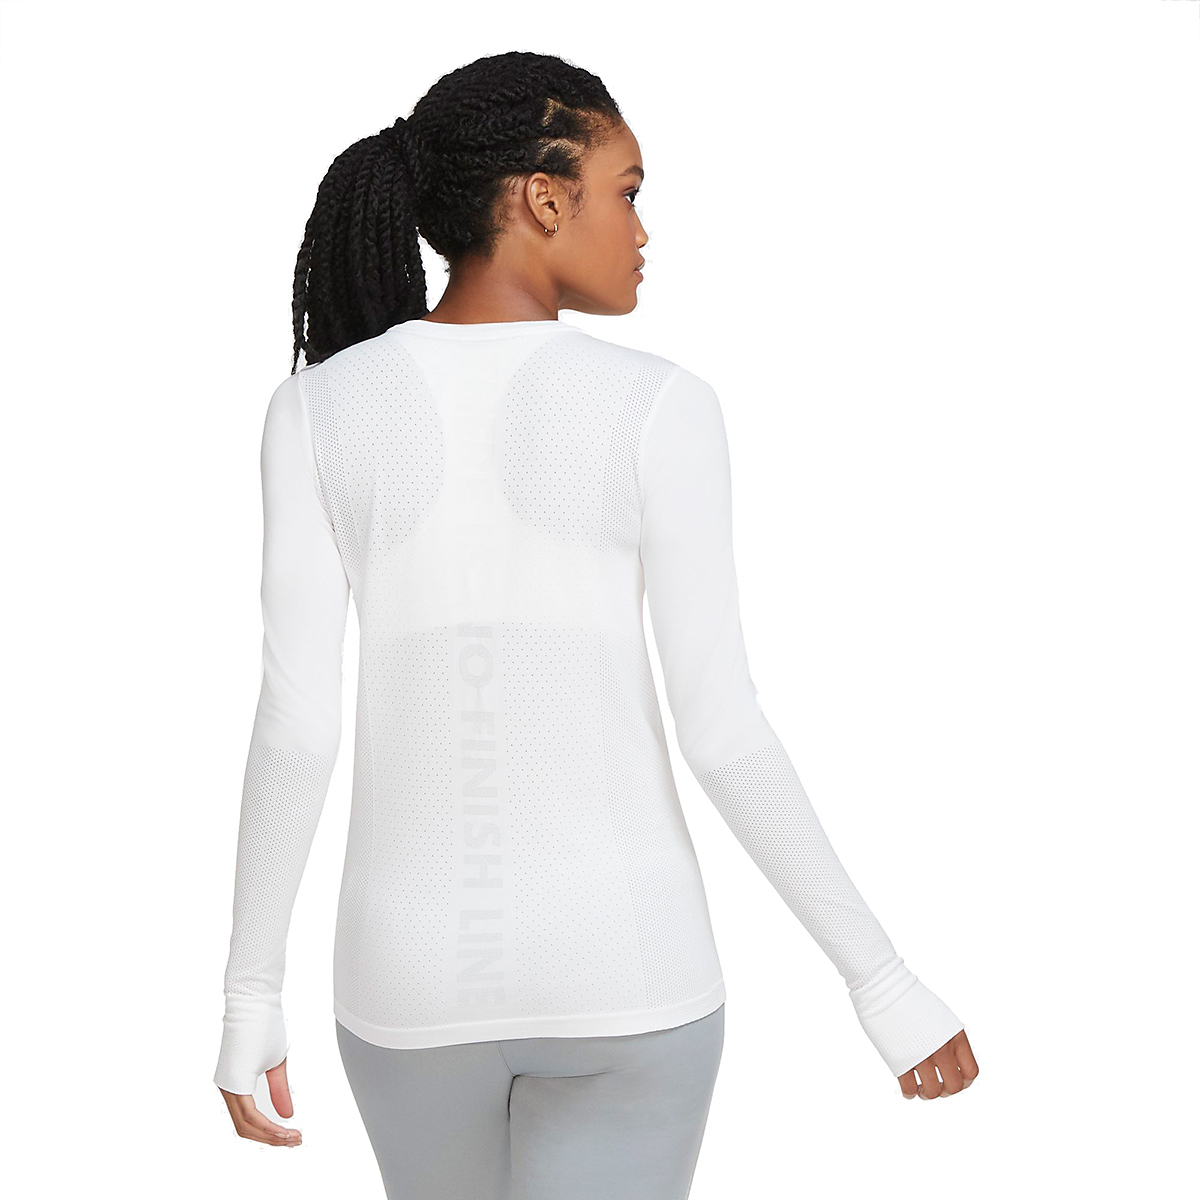 Women's Nike Infinite Running Top Long Sleeve - Color: White - Size: XS, White, large, image 2